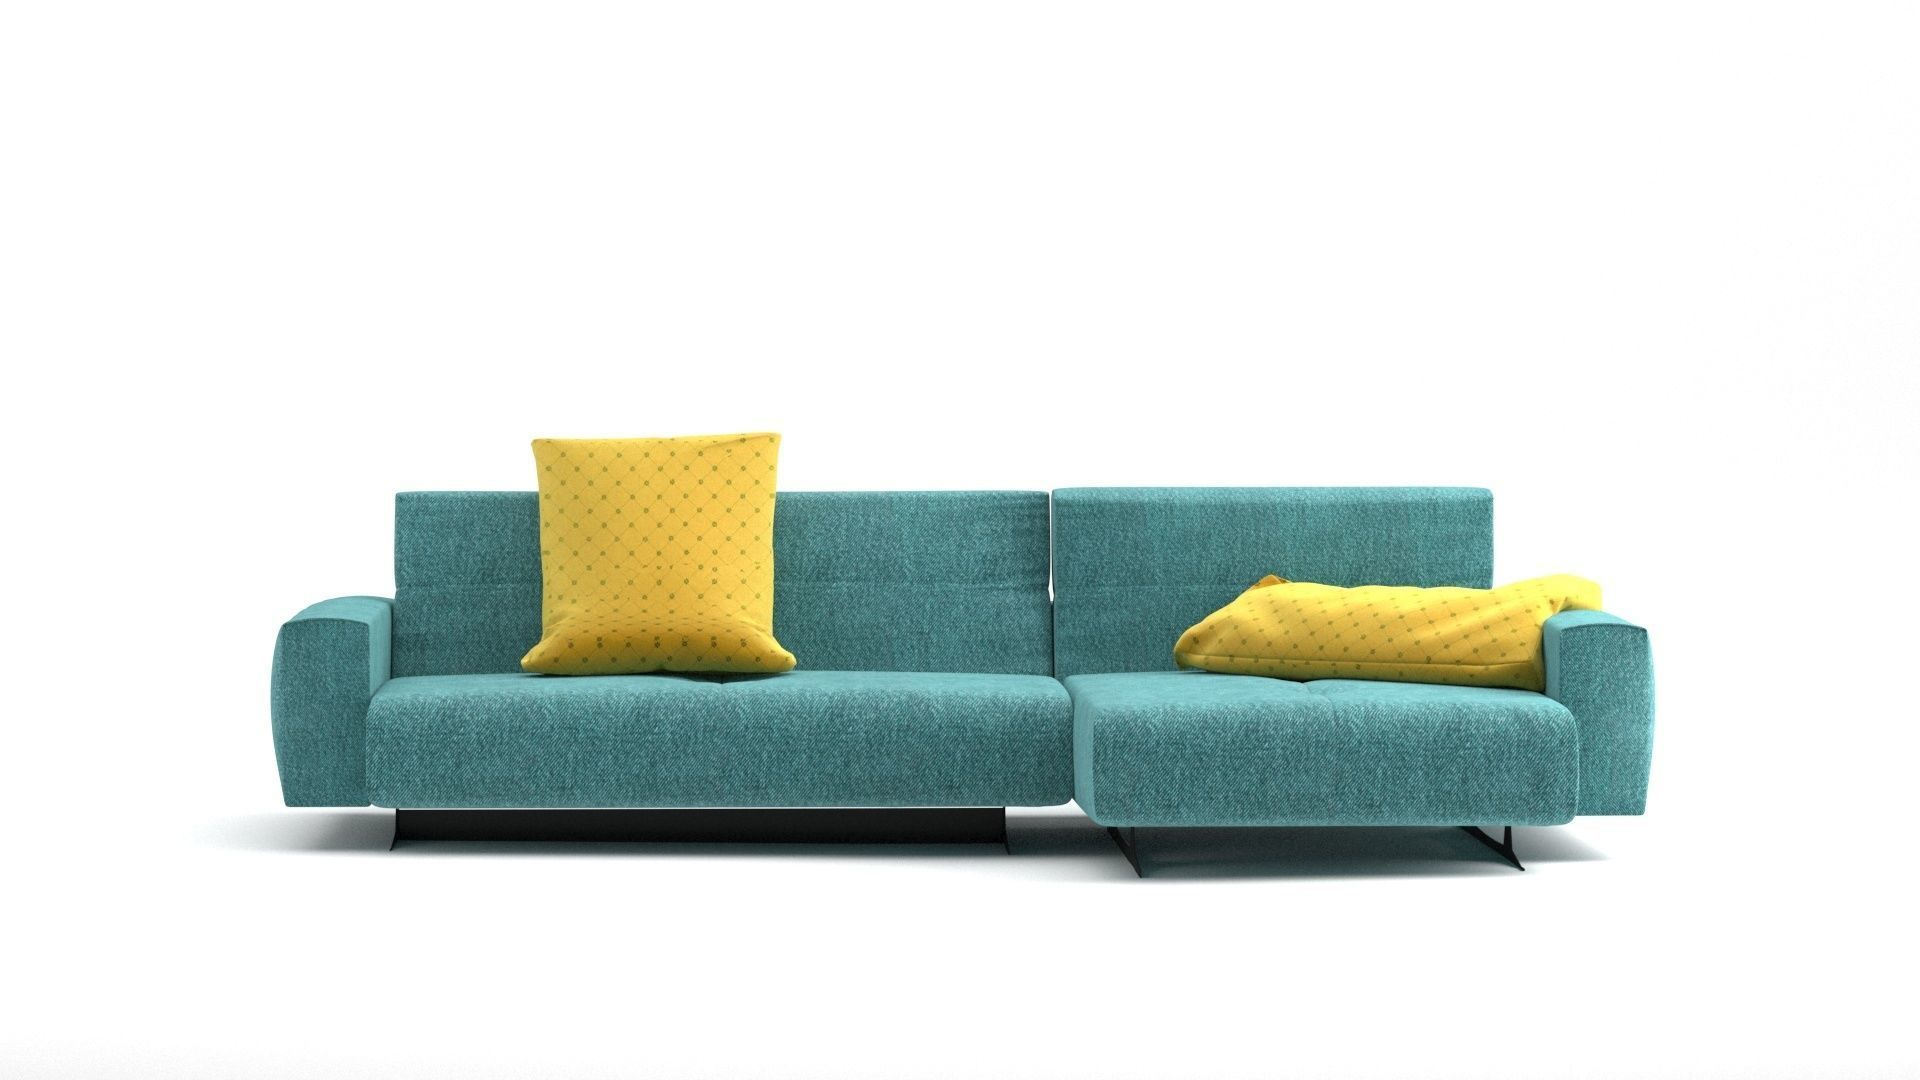 Divano 3ds Max.Sofa Divano Benz V Ray Corona Render 3d Model